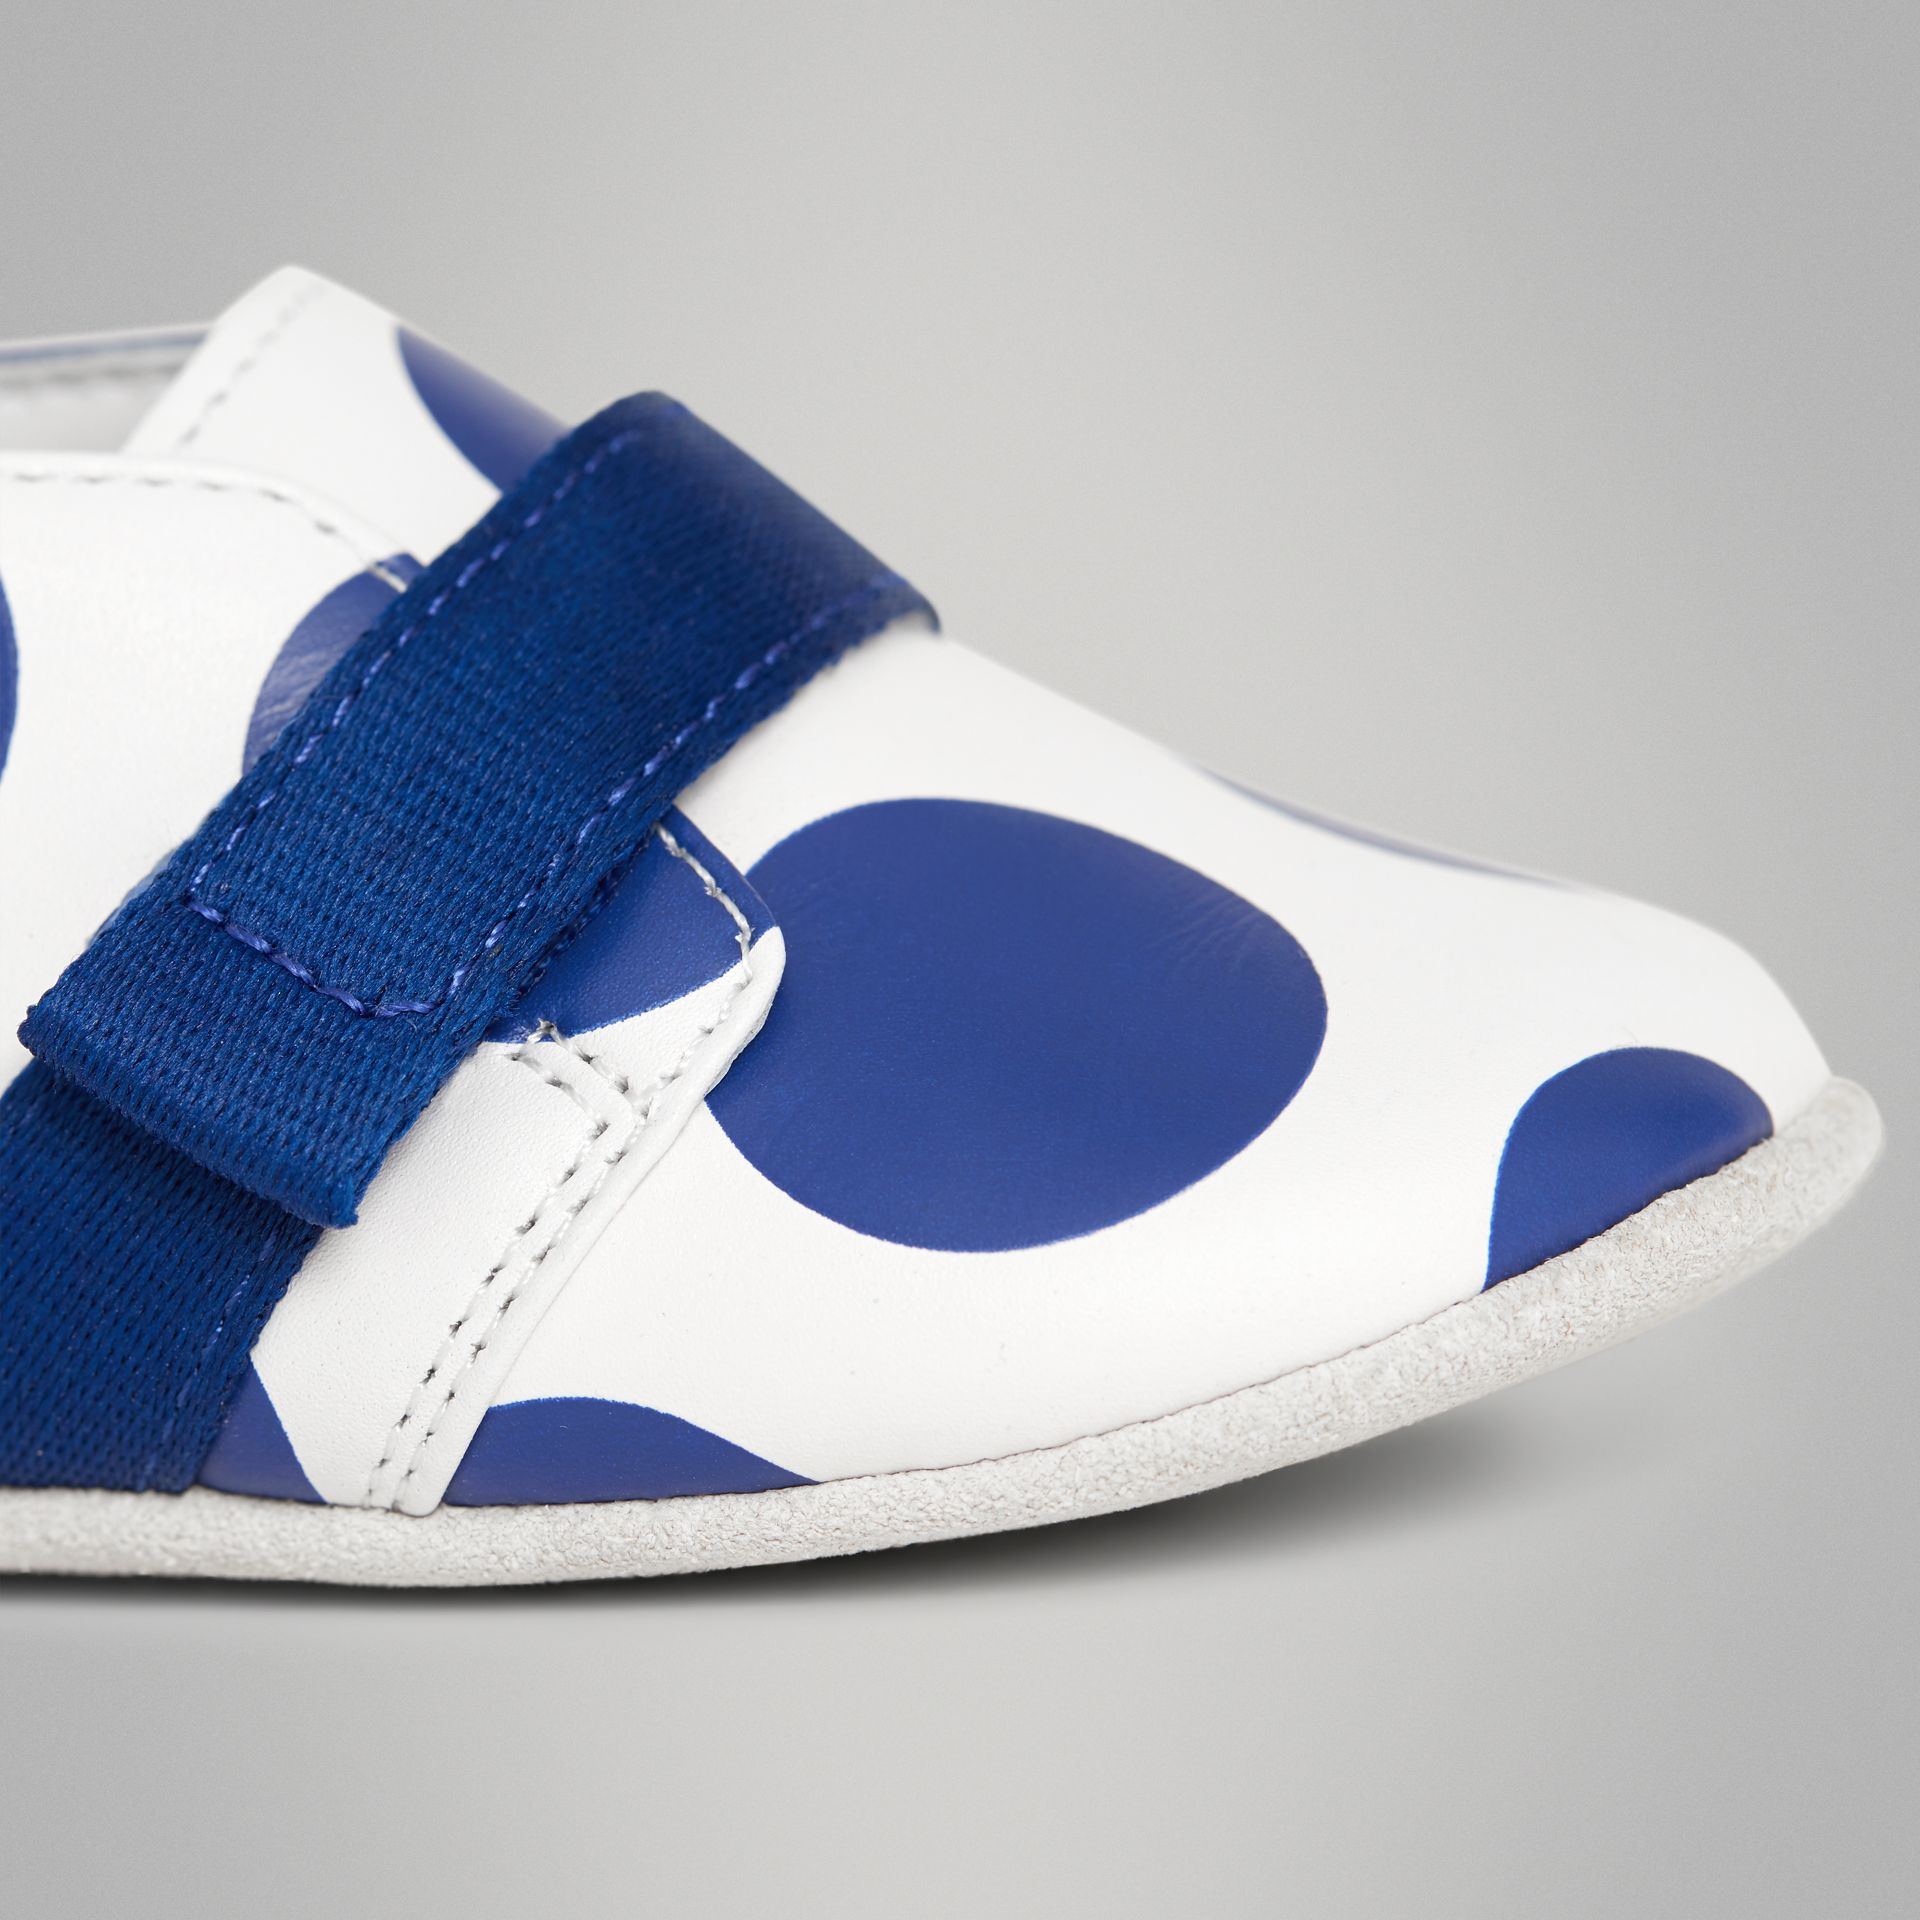 Spot Print Leather Shoes in Bright Blue - Children | Burberry Australia - gallery image 1